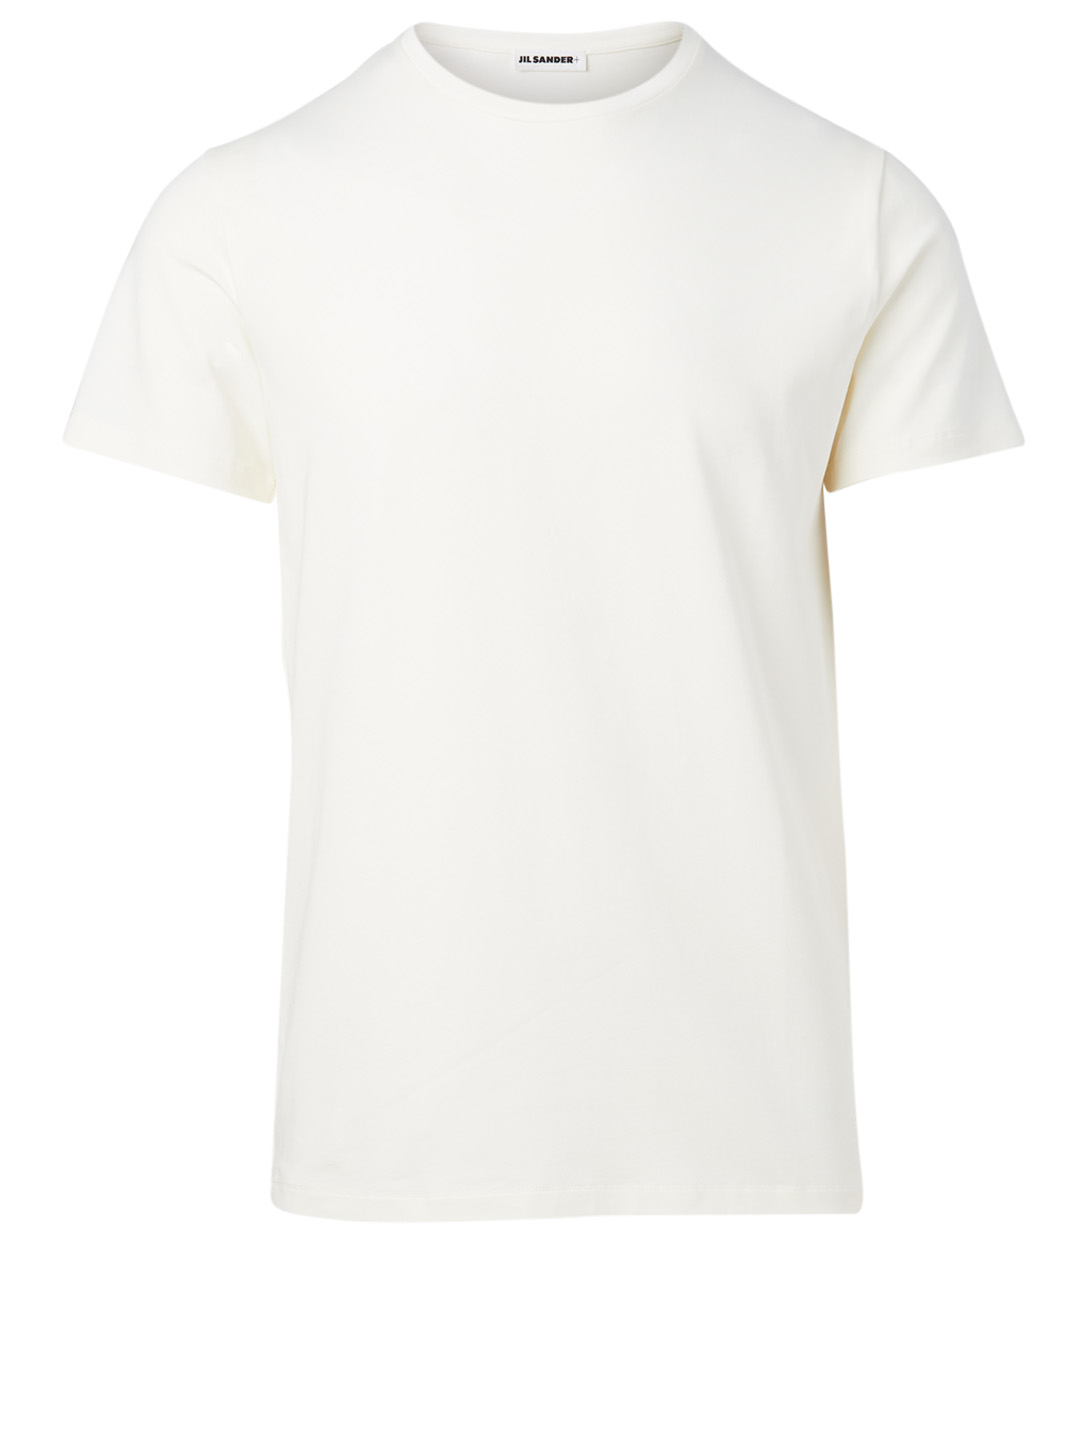 JIL SANDER Crewneck T-Shirt Men's White